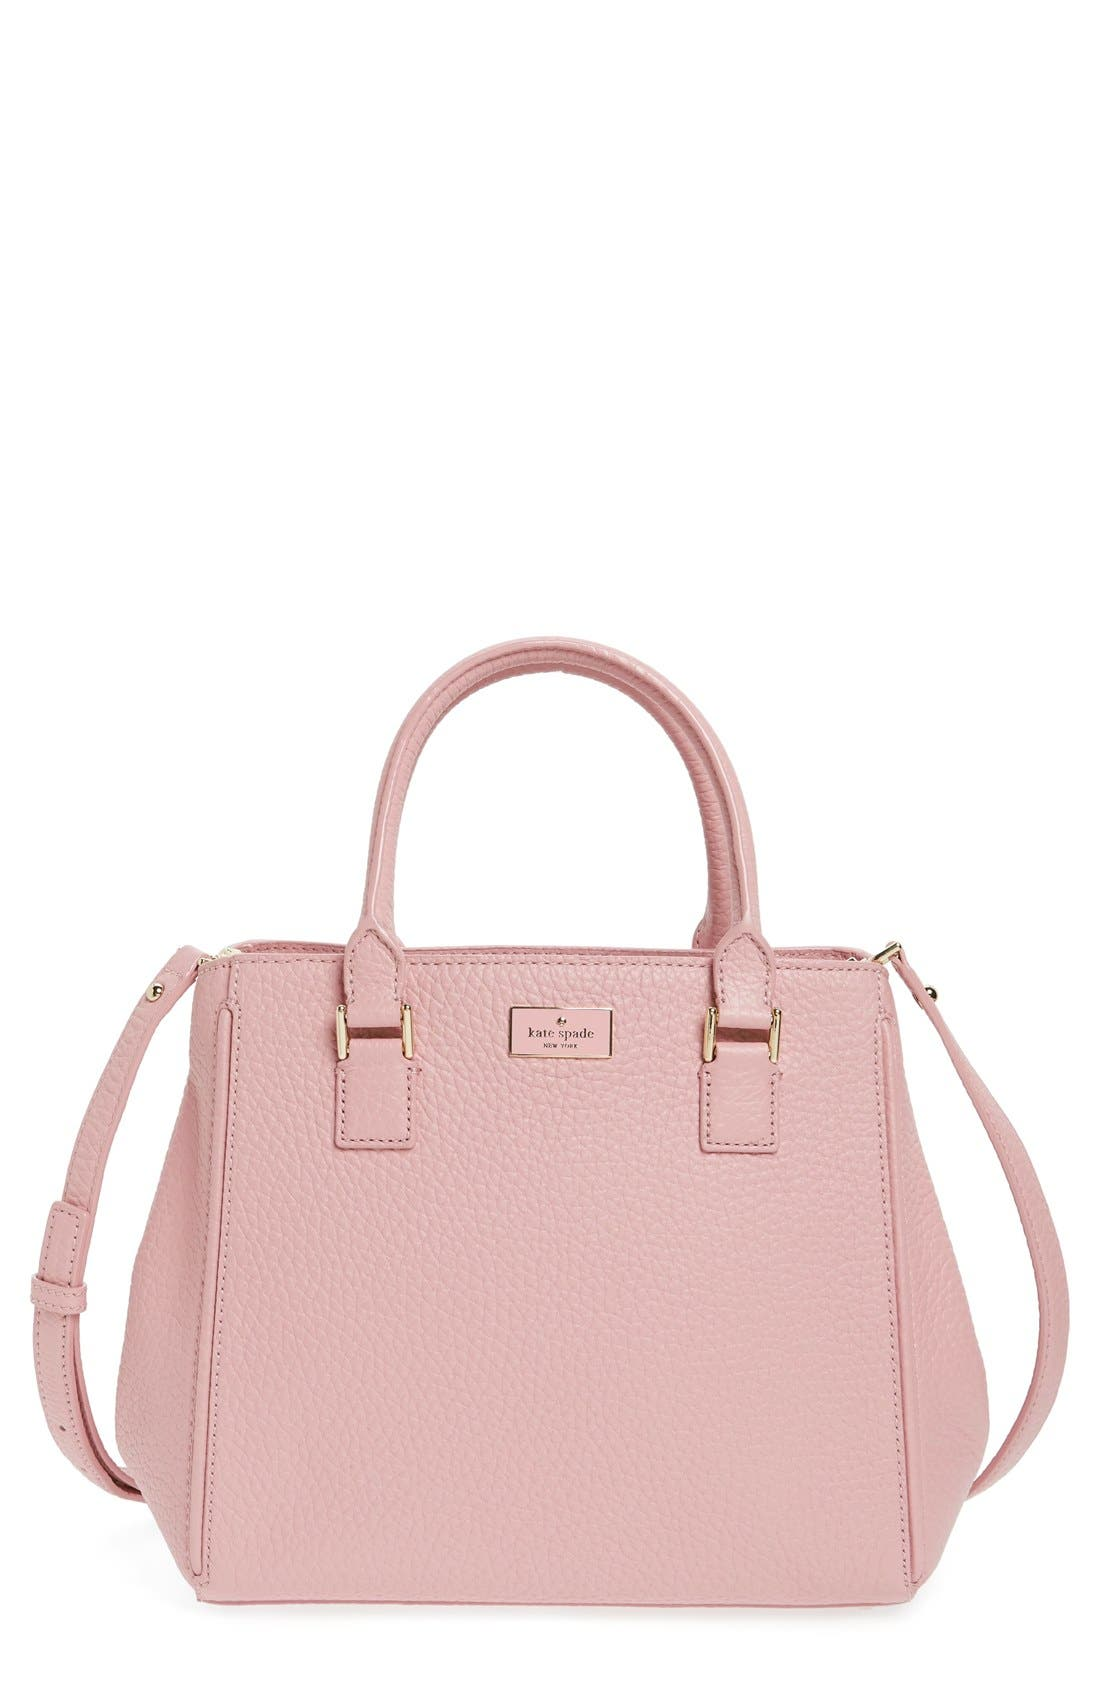 Alternate Image 1 Selected - kate spade new york 'prospect place - maddie' grainy leather satchel